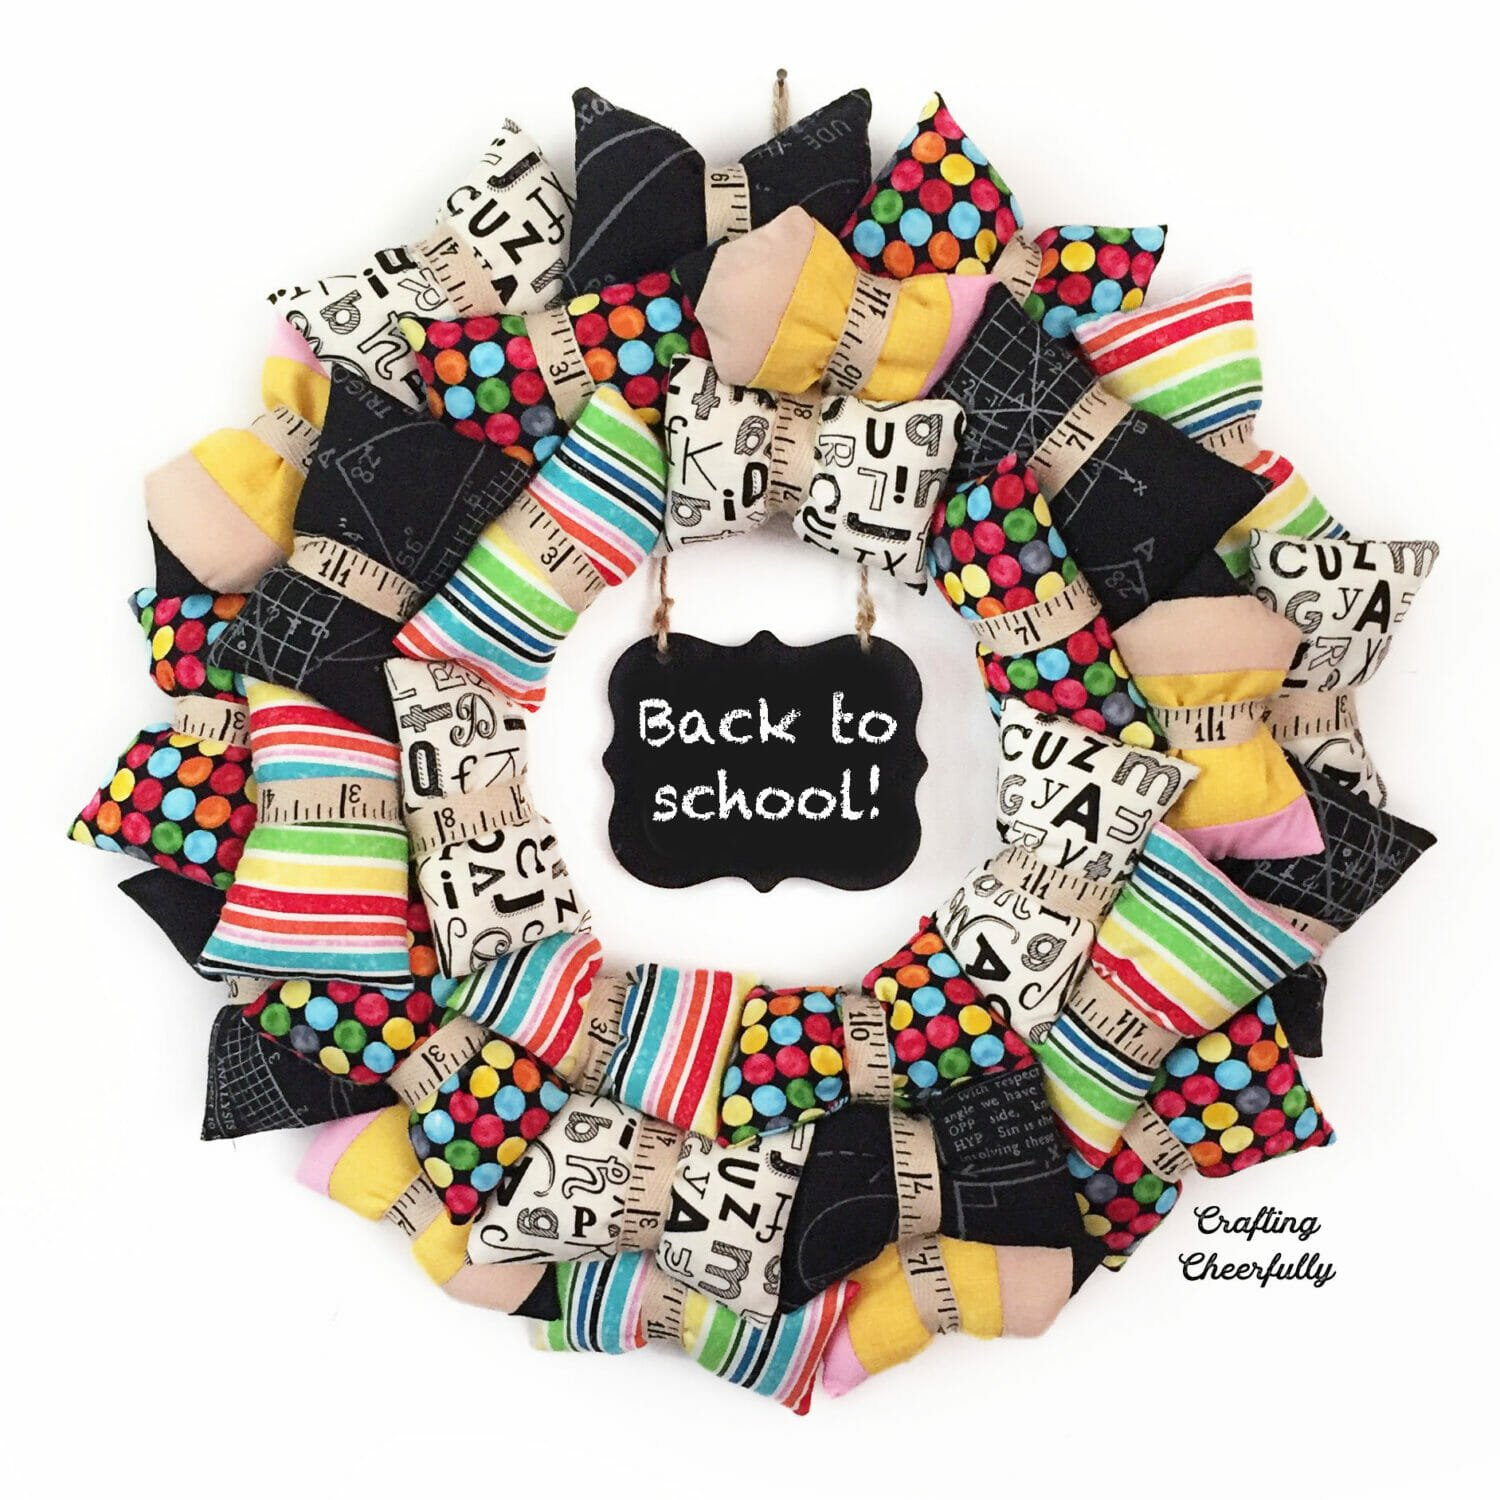 Back to School pillow wreath wth fun colorful fabrics including tiny pencil pillows!